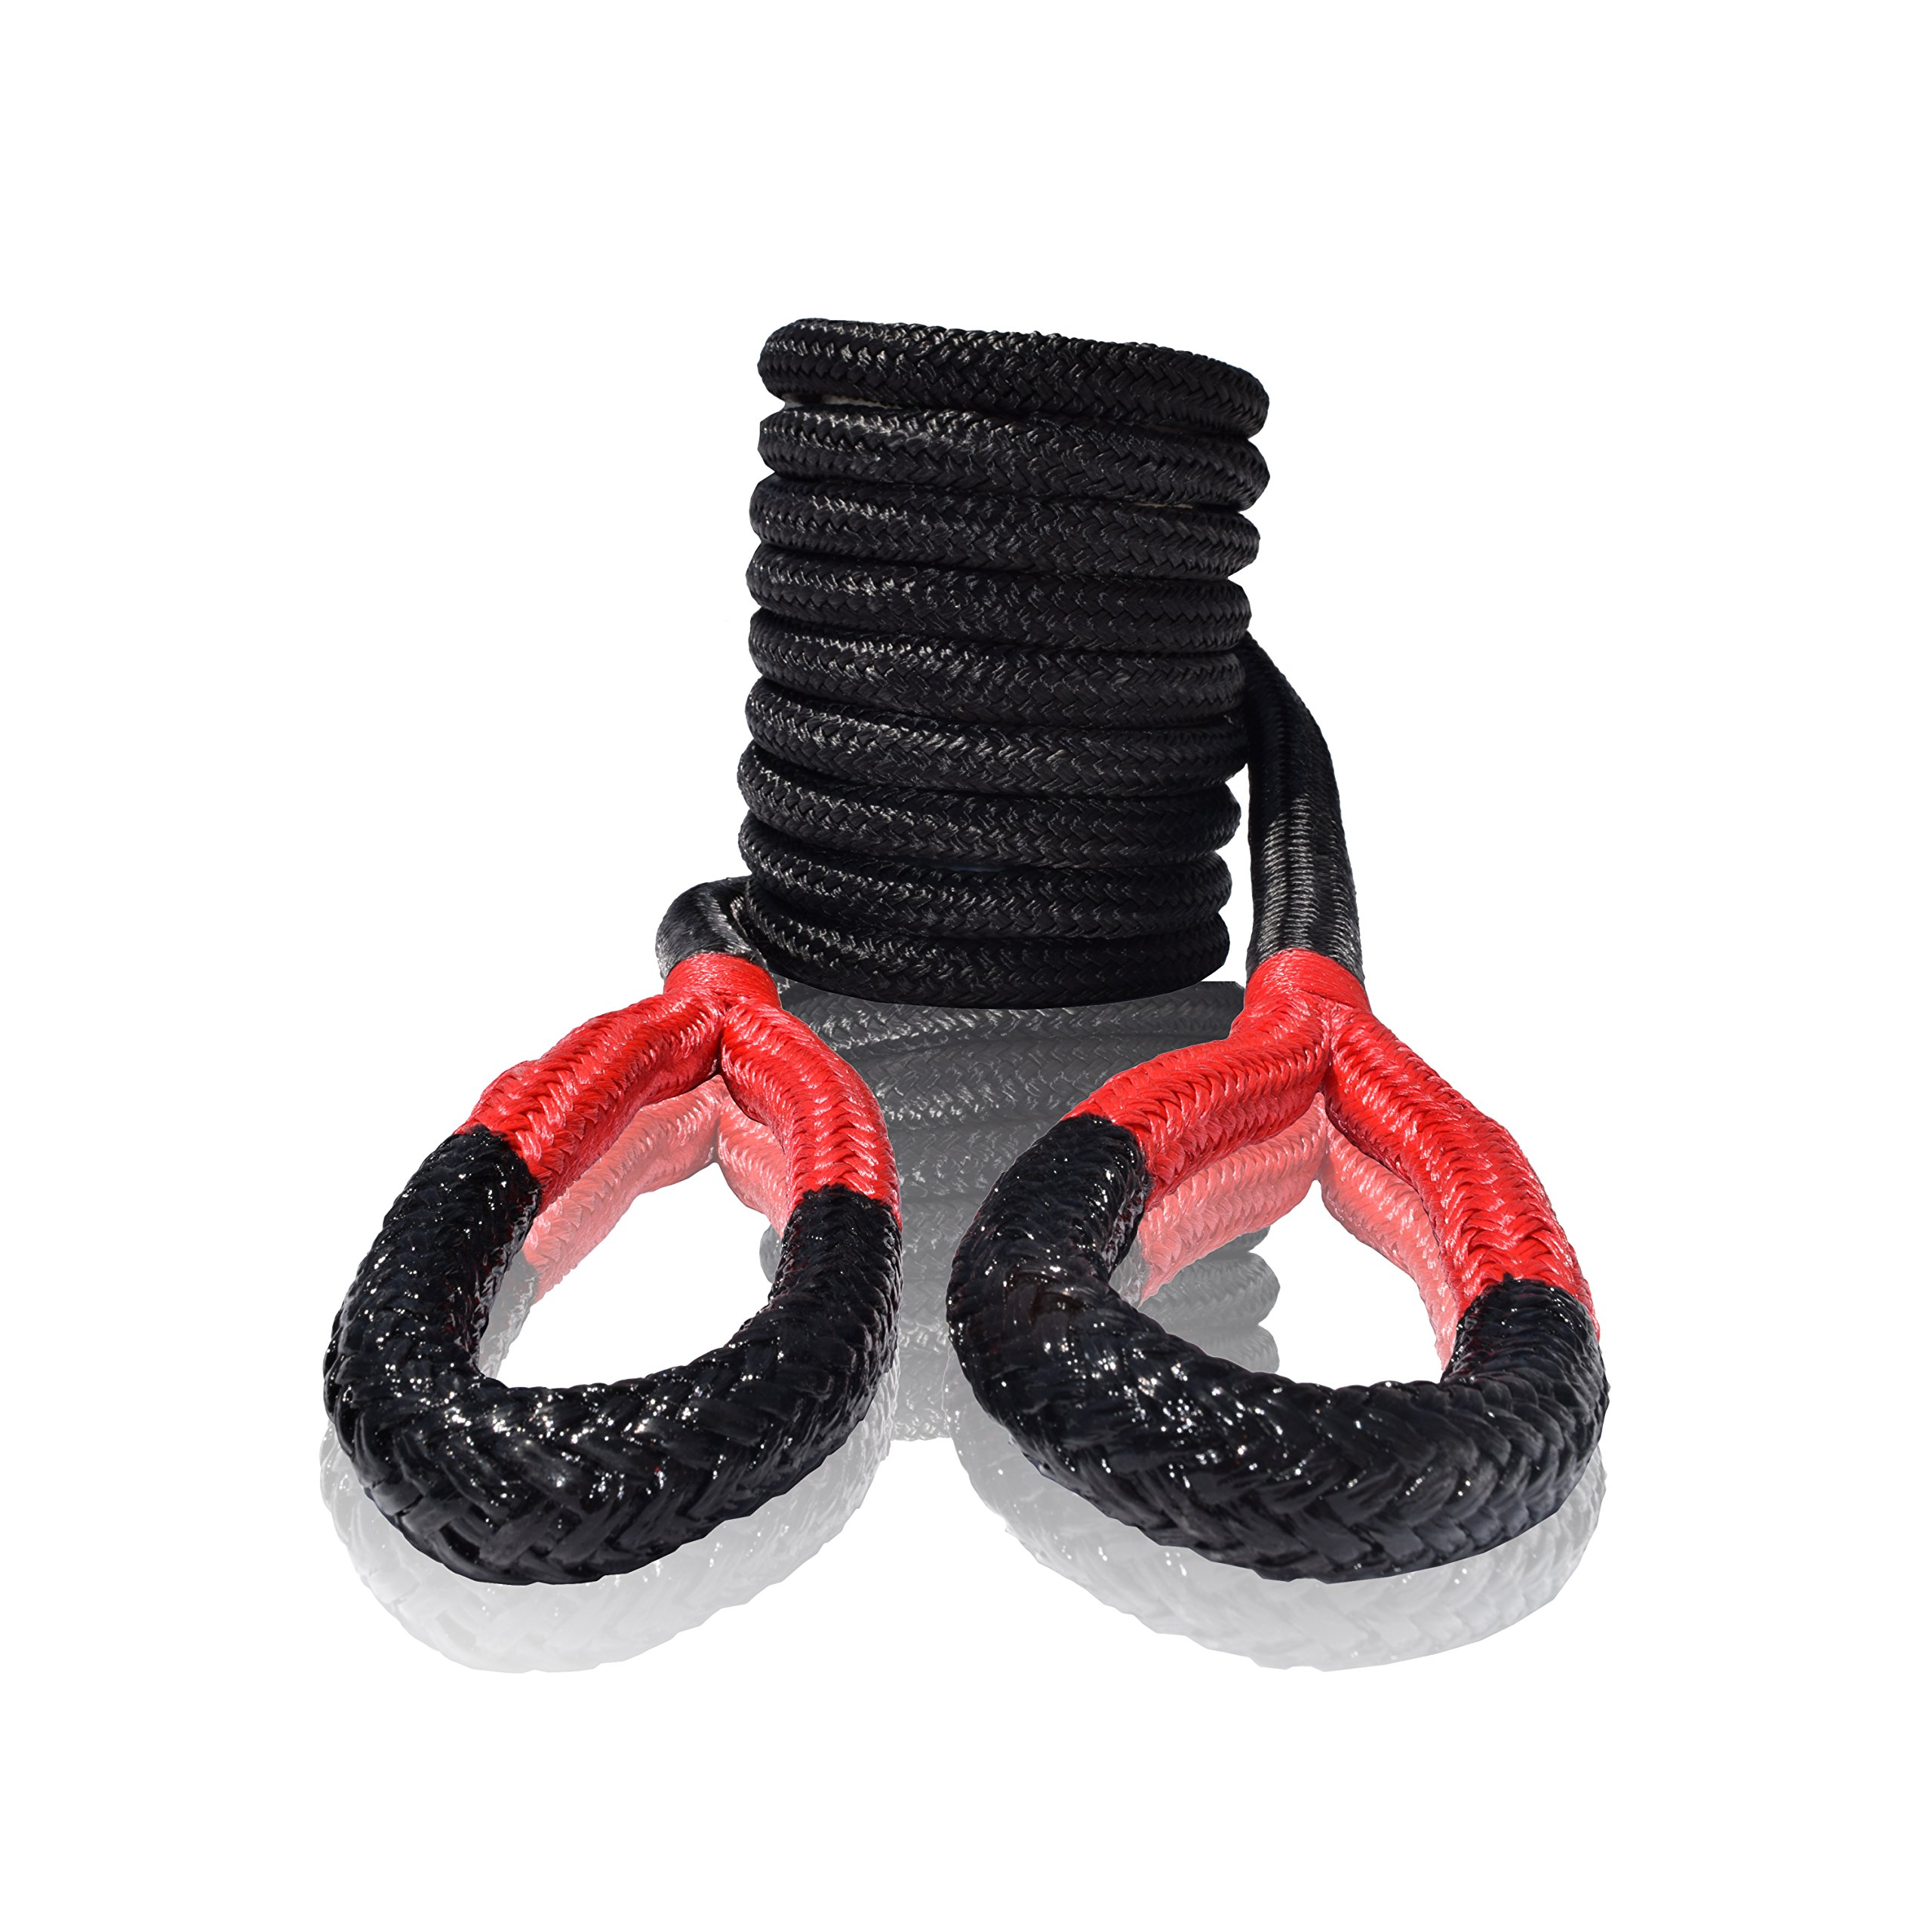 QIQU Kinetic Recovery & Tow Rope Heavy Duty Vehicle Tow Strap Rope for Truck ATV UTV SUV Snowmobile and 4x4 Off-Road Recovery 3 Size to Choose(1/2''/3/4''/1'') 3 Color (3/4''x30', Black) by QIQU